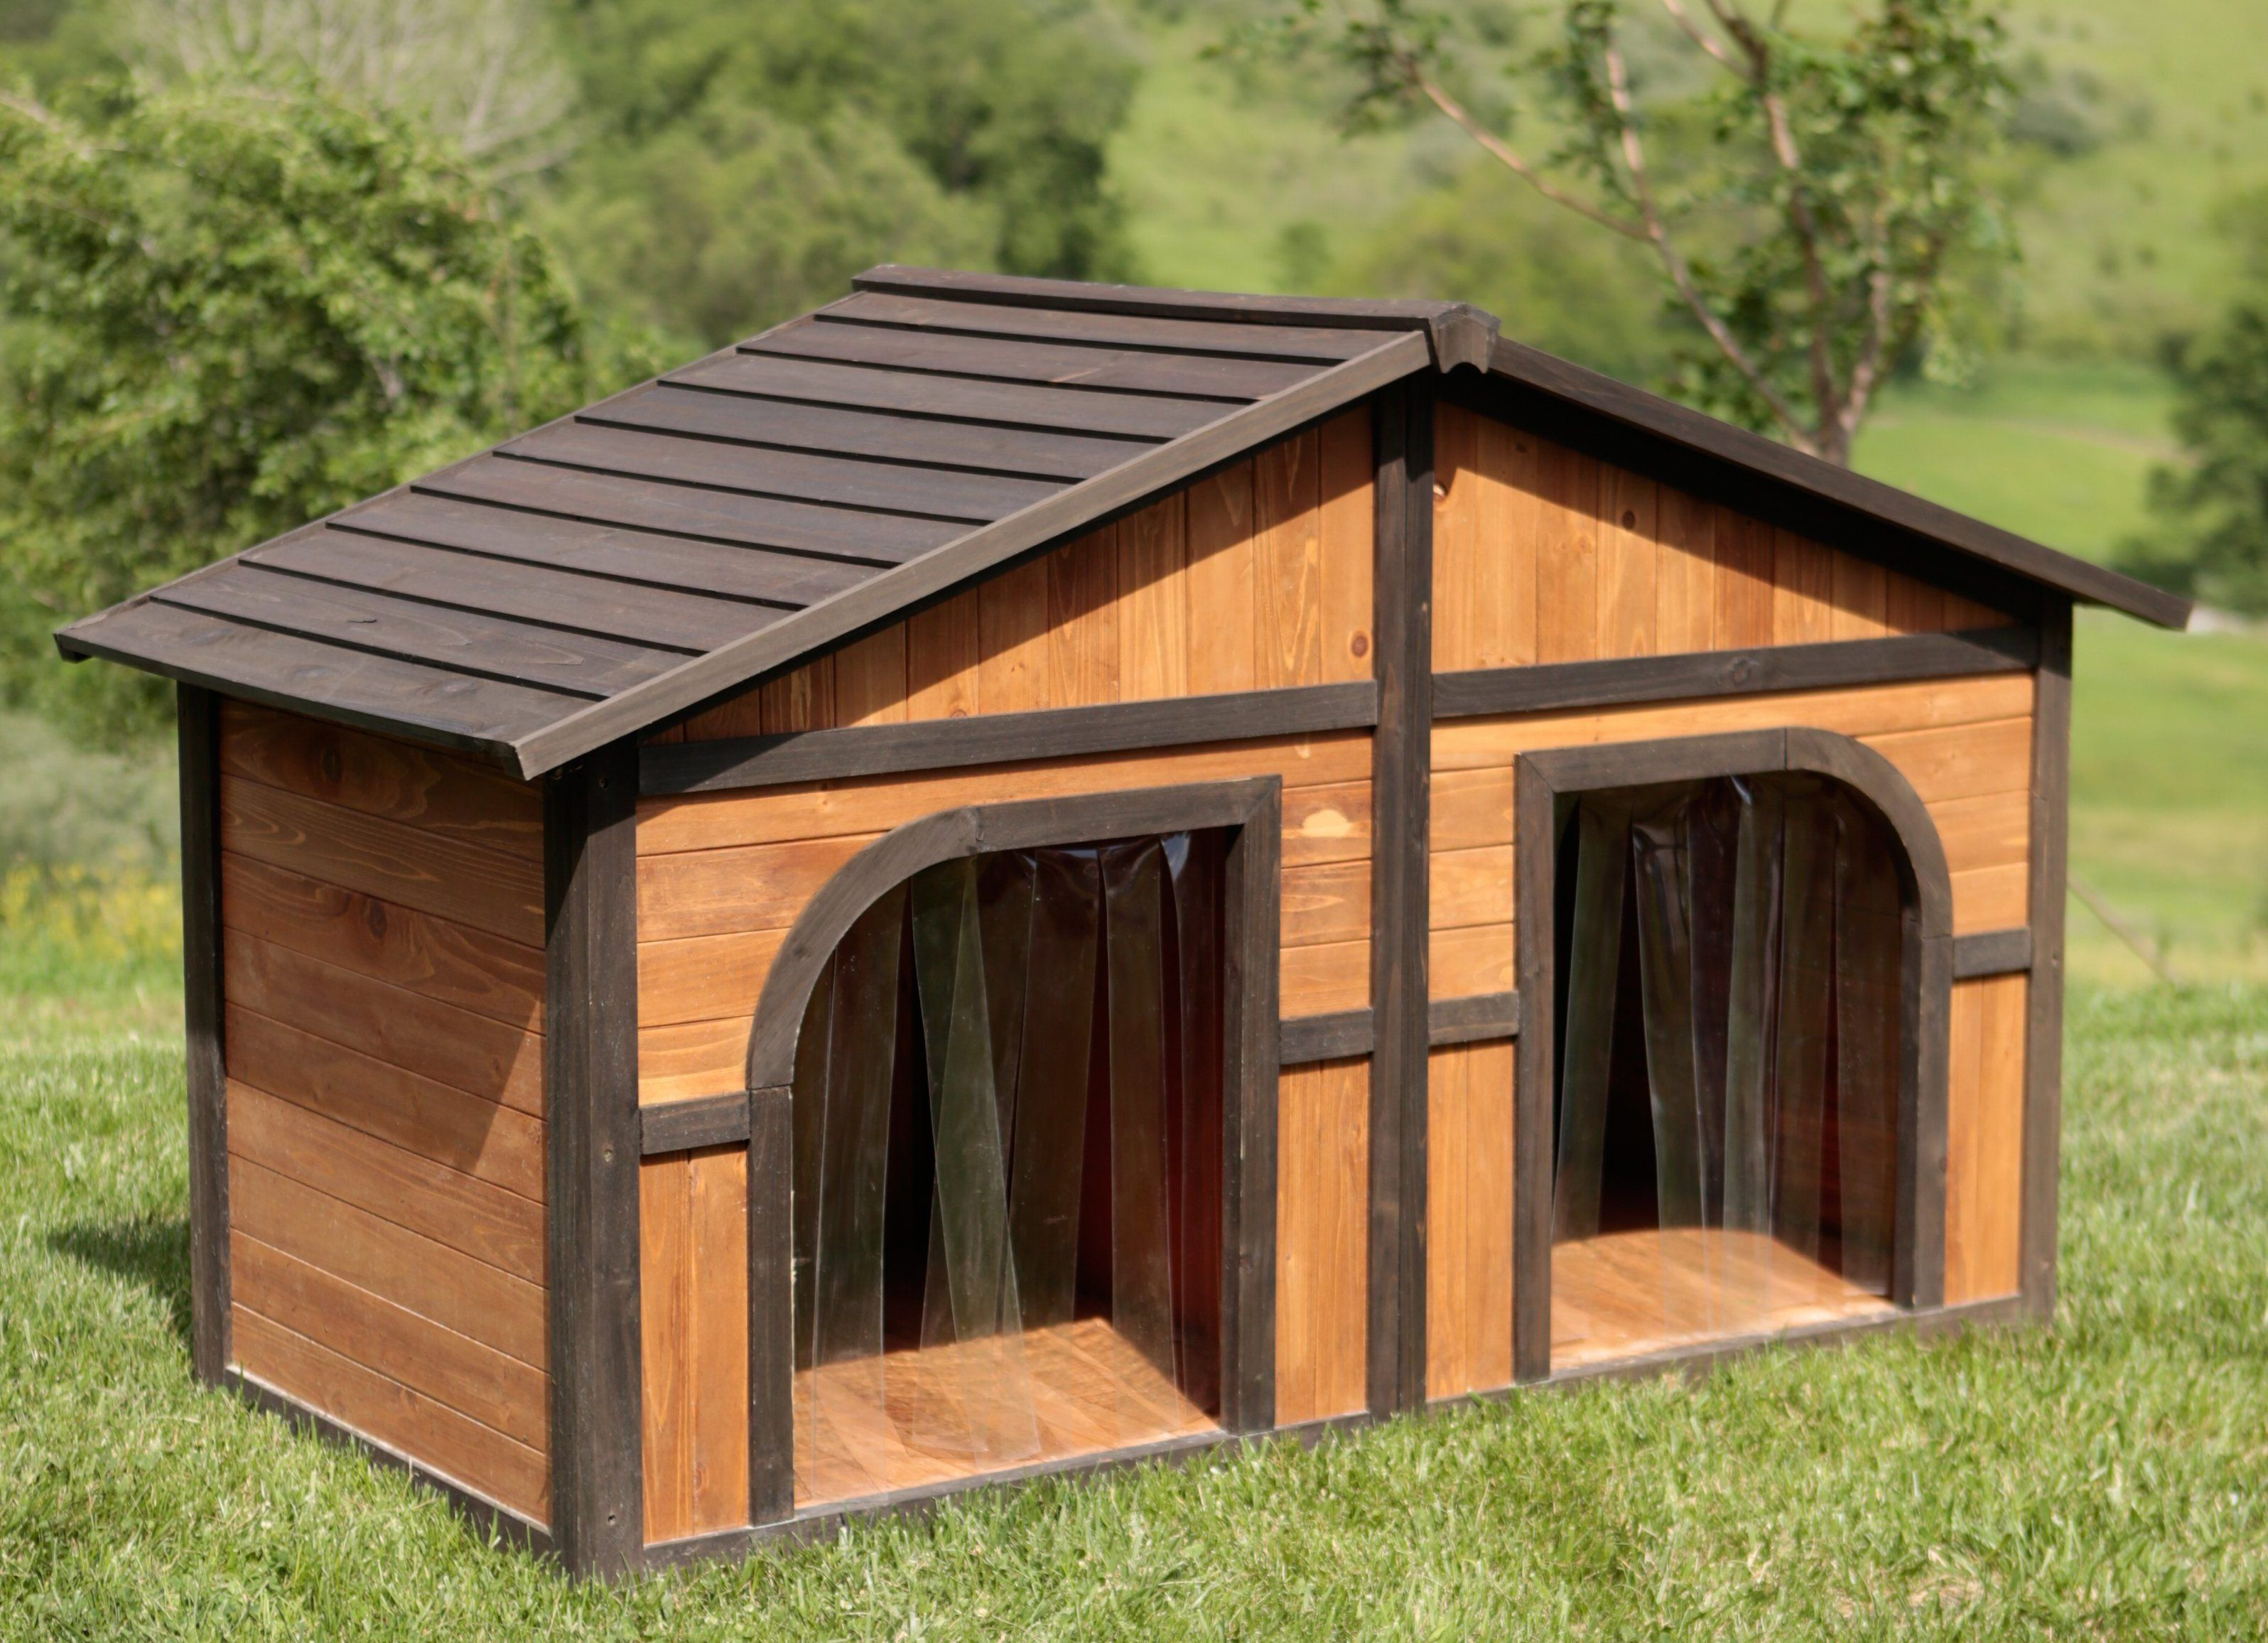 10 Simple But Beautiful Diy Dog House Designs That You Can Do Easily Dog House Plans Dog House Diy Outdoor Dog House